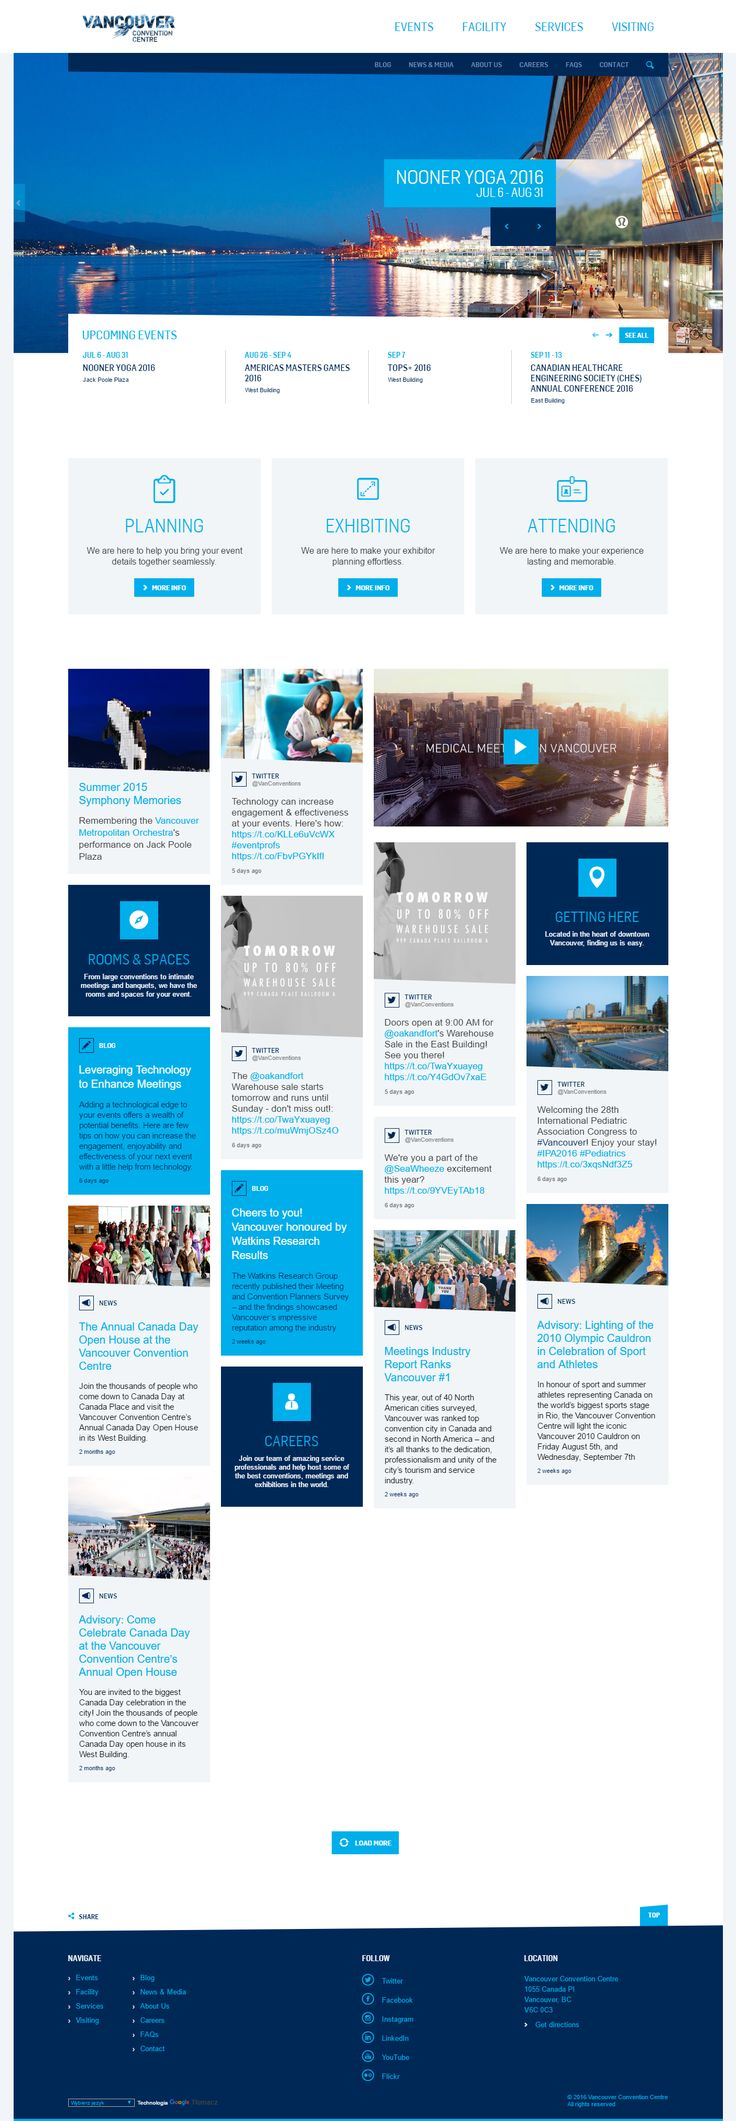 Vancouver Convention Centre website inspiration